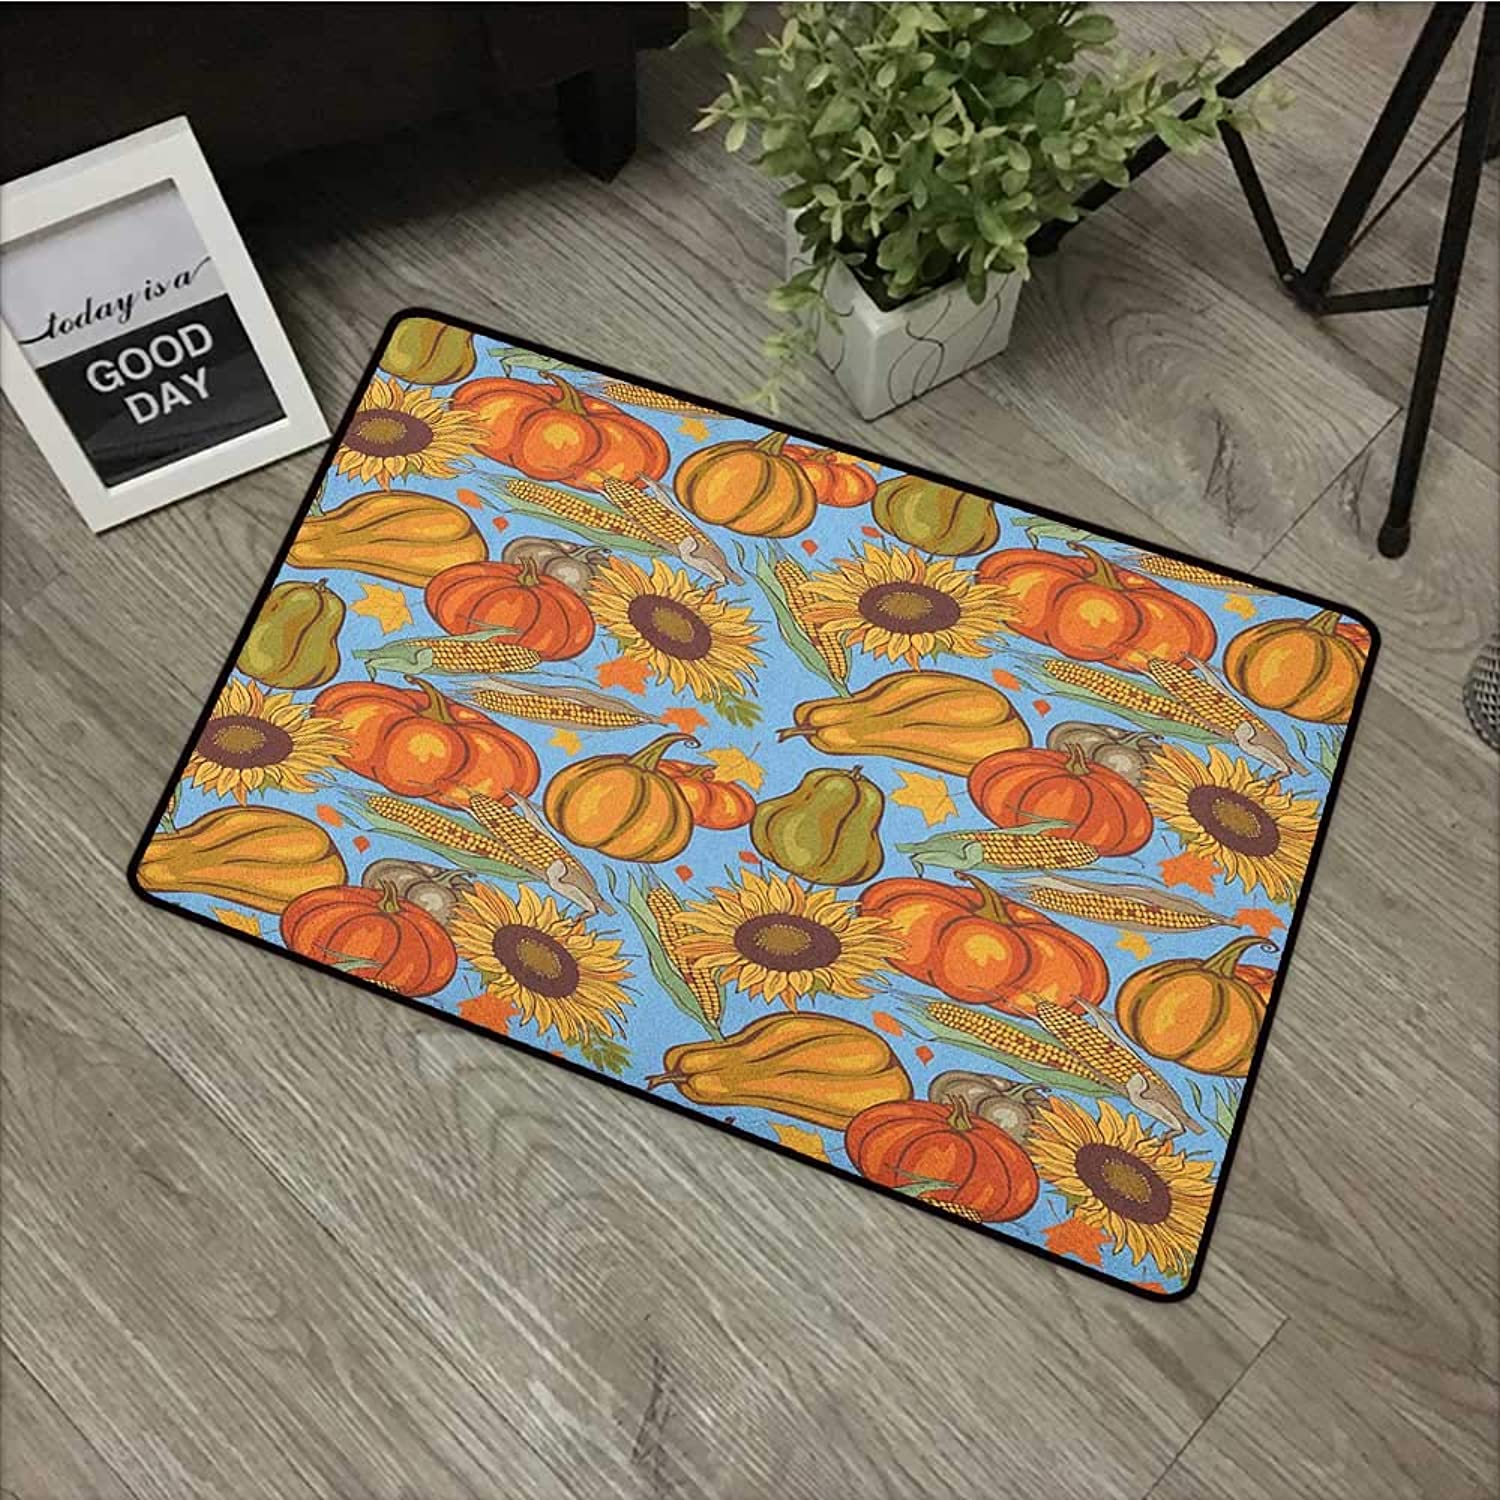 Door mat W35 x L59 INCH Harvest,Agriculture Theme Vegetable Pattern Corns Pumpkins and Sunflowers, orange Yellow Pale bluee Easy to Clean, Easy to fold,Non-Slip Door Mat Carpet